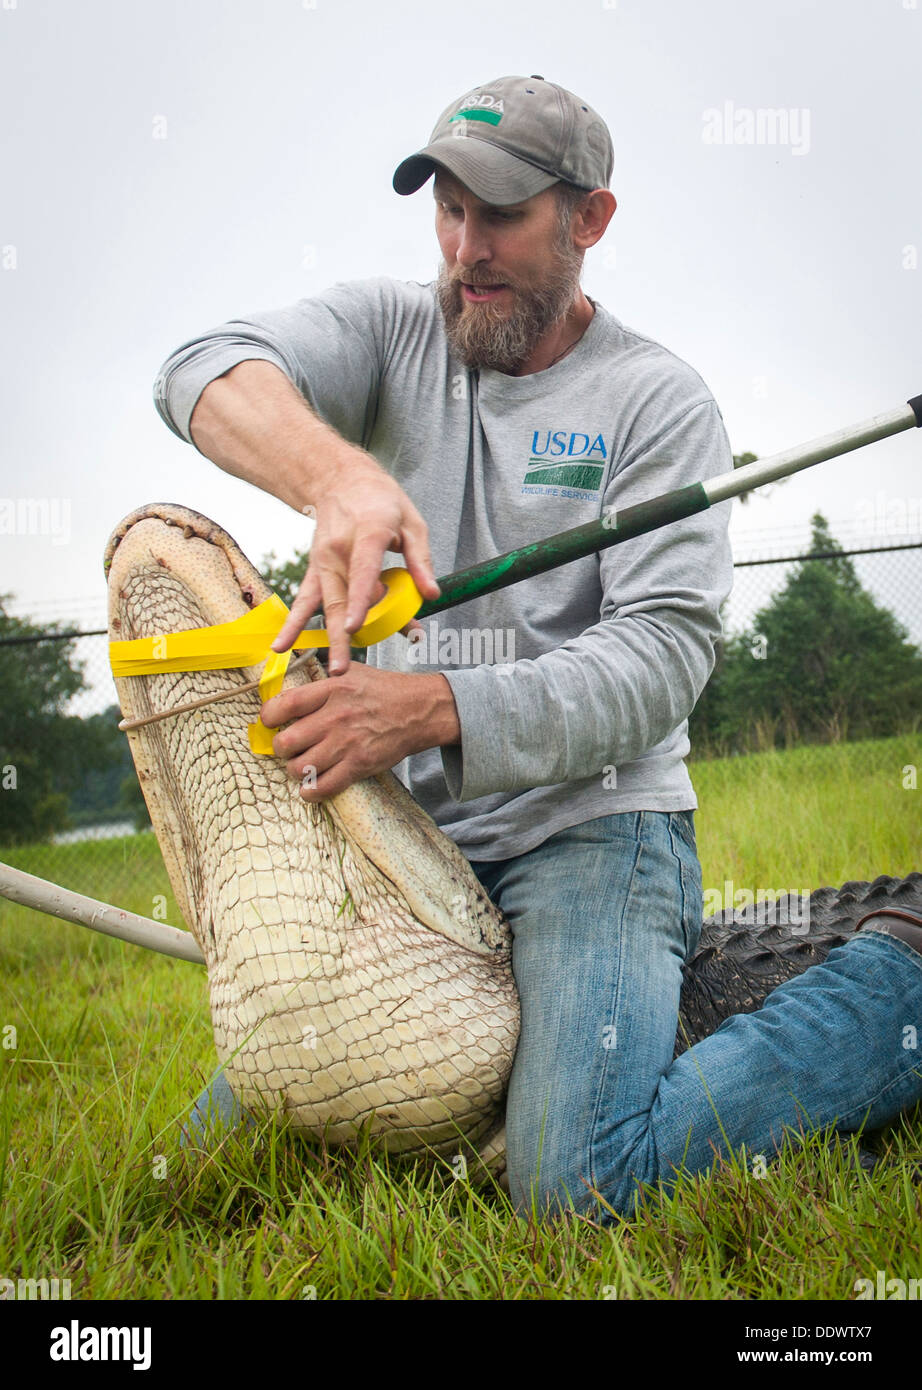 A USDA biologist binds a nuisance alligator after being captured July 25, 2013 at Moody Air Force Base, GA., July 25, 2013. The alligator had to be relocated after it lost fear of people due to illegal feeding. - Stock Image